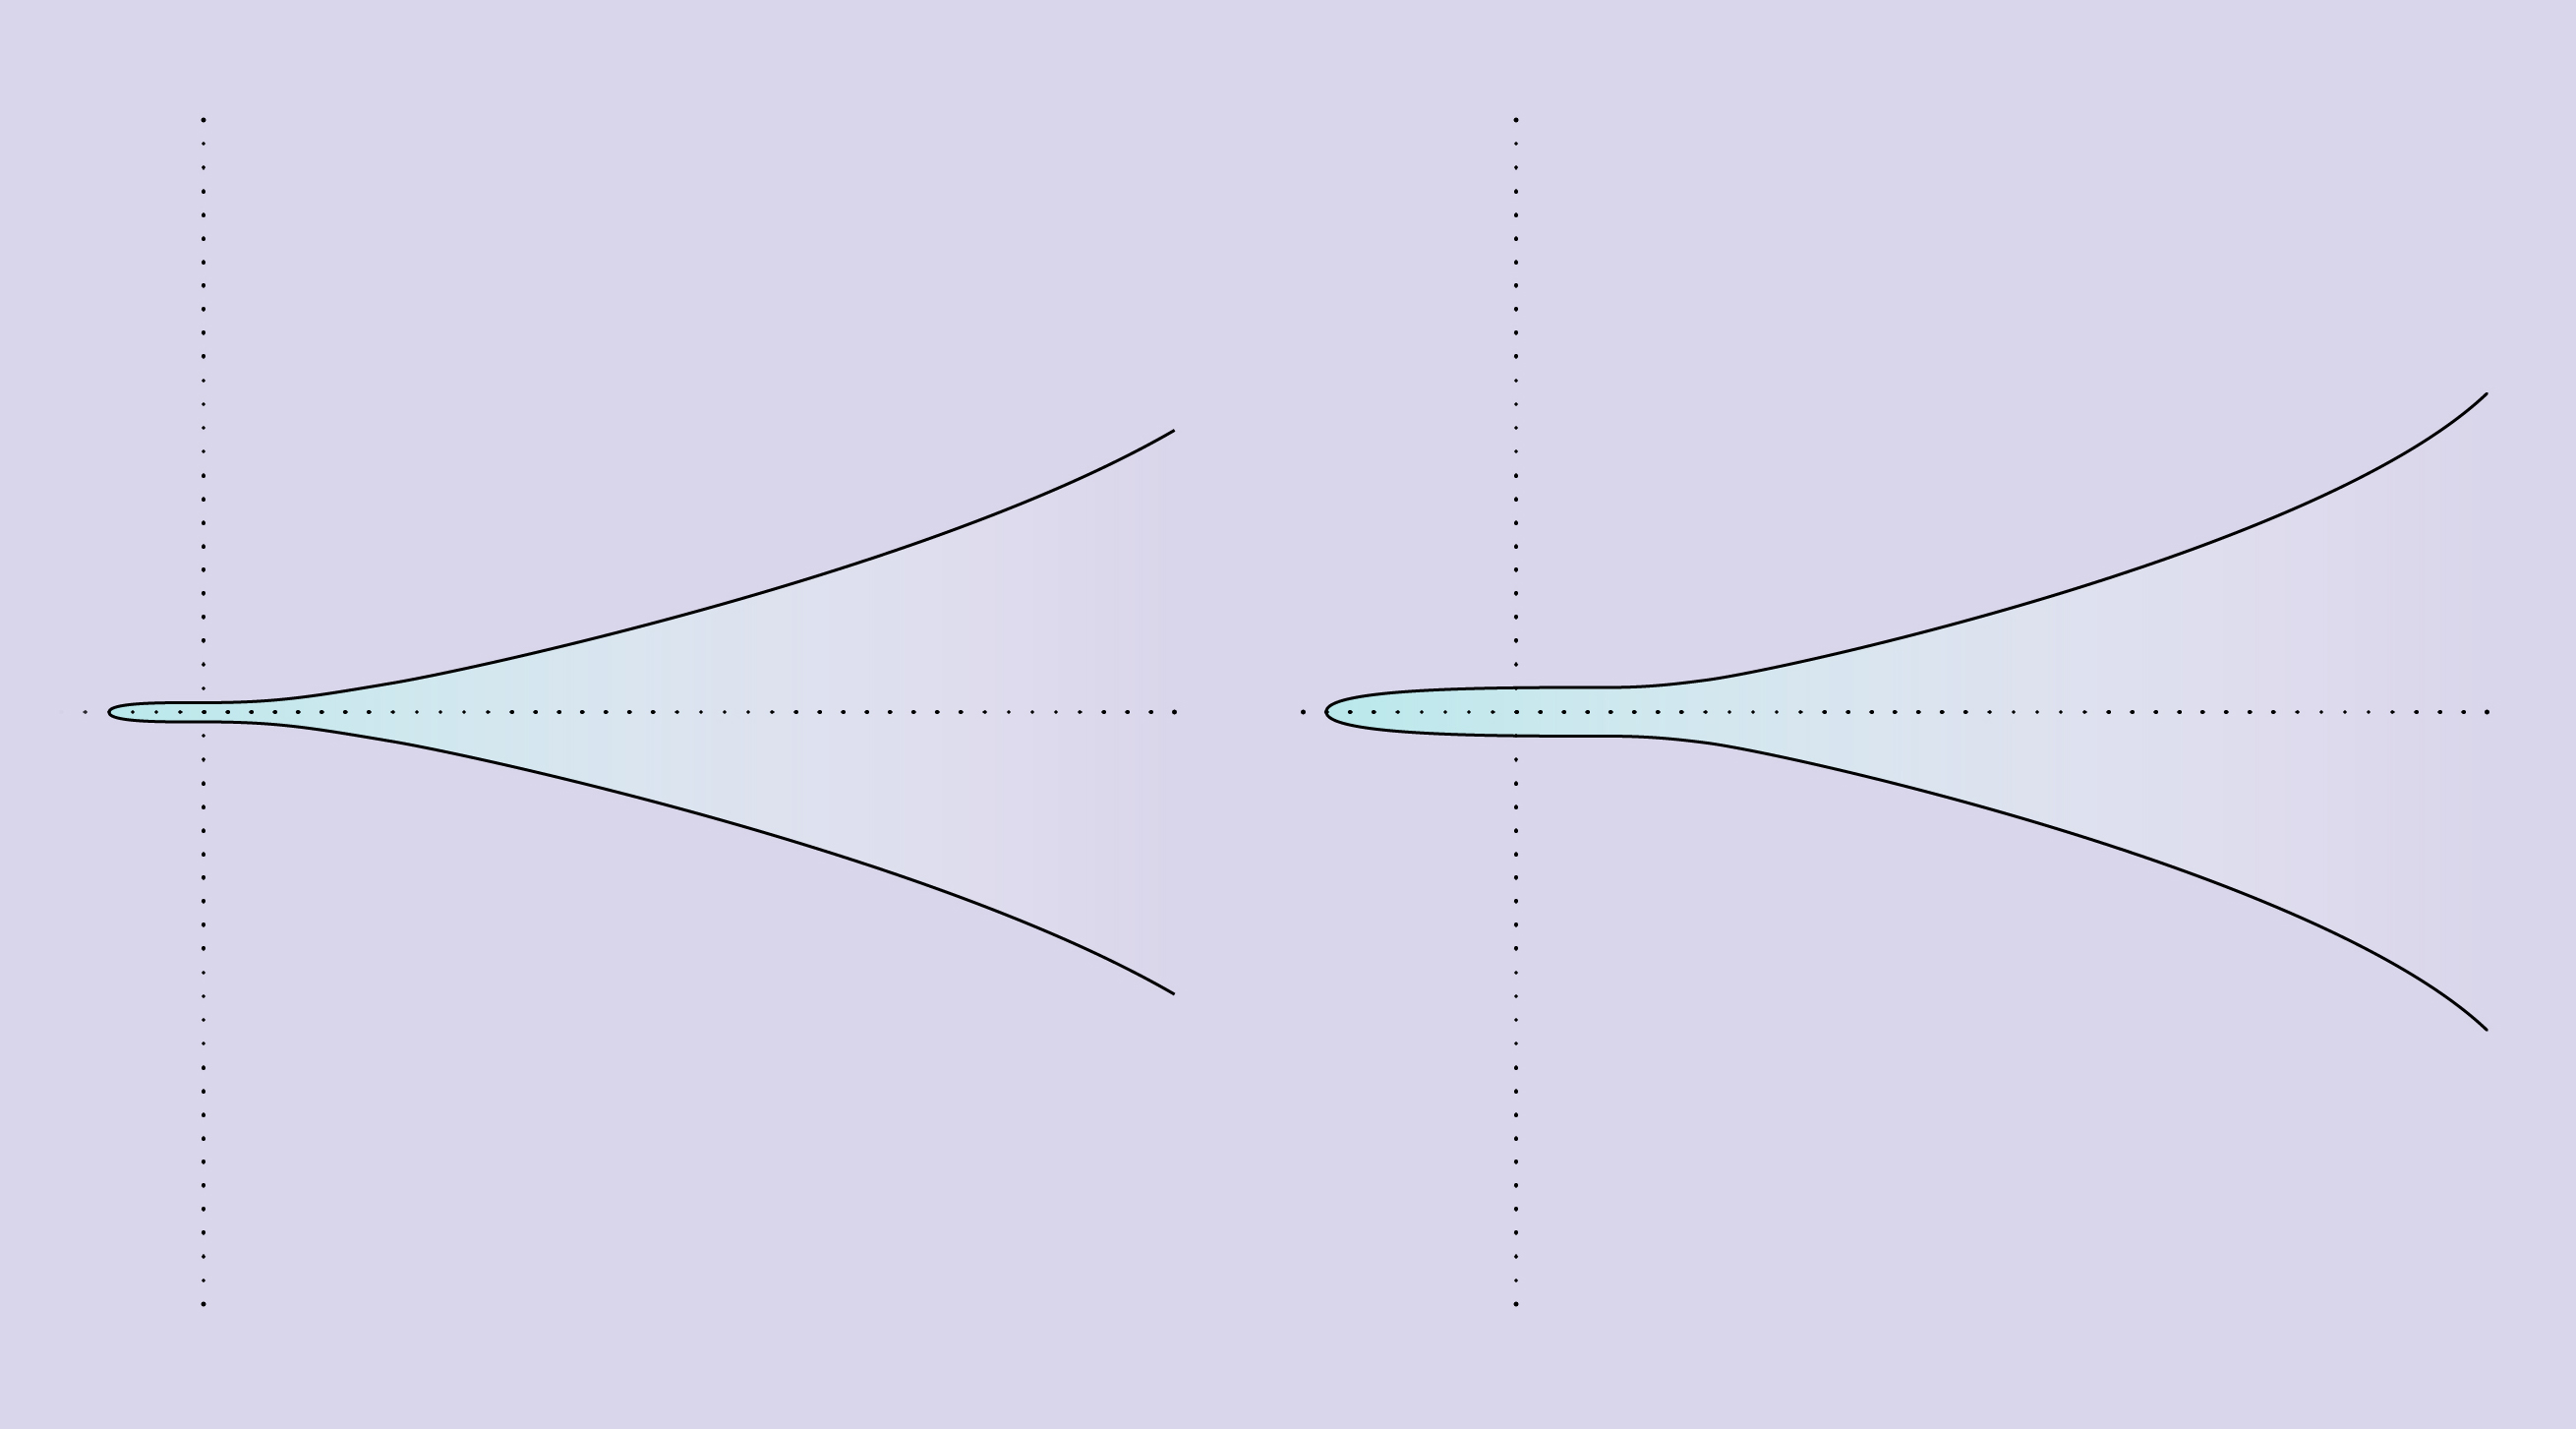 New evidence demonstrates the existence of two types of infinite curves